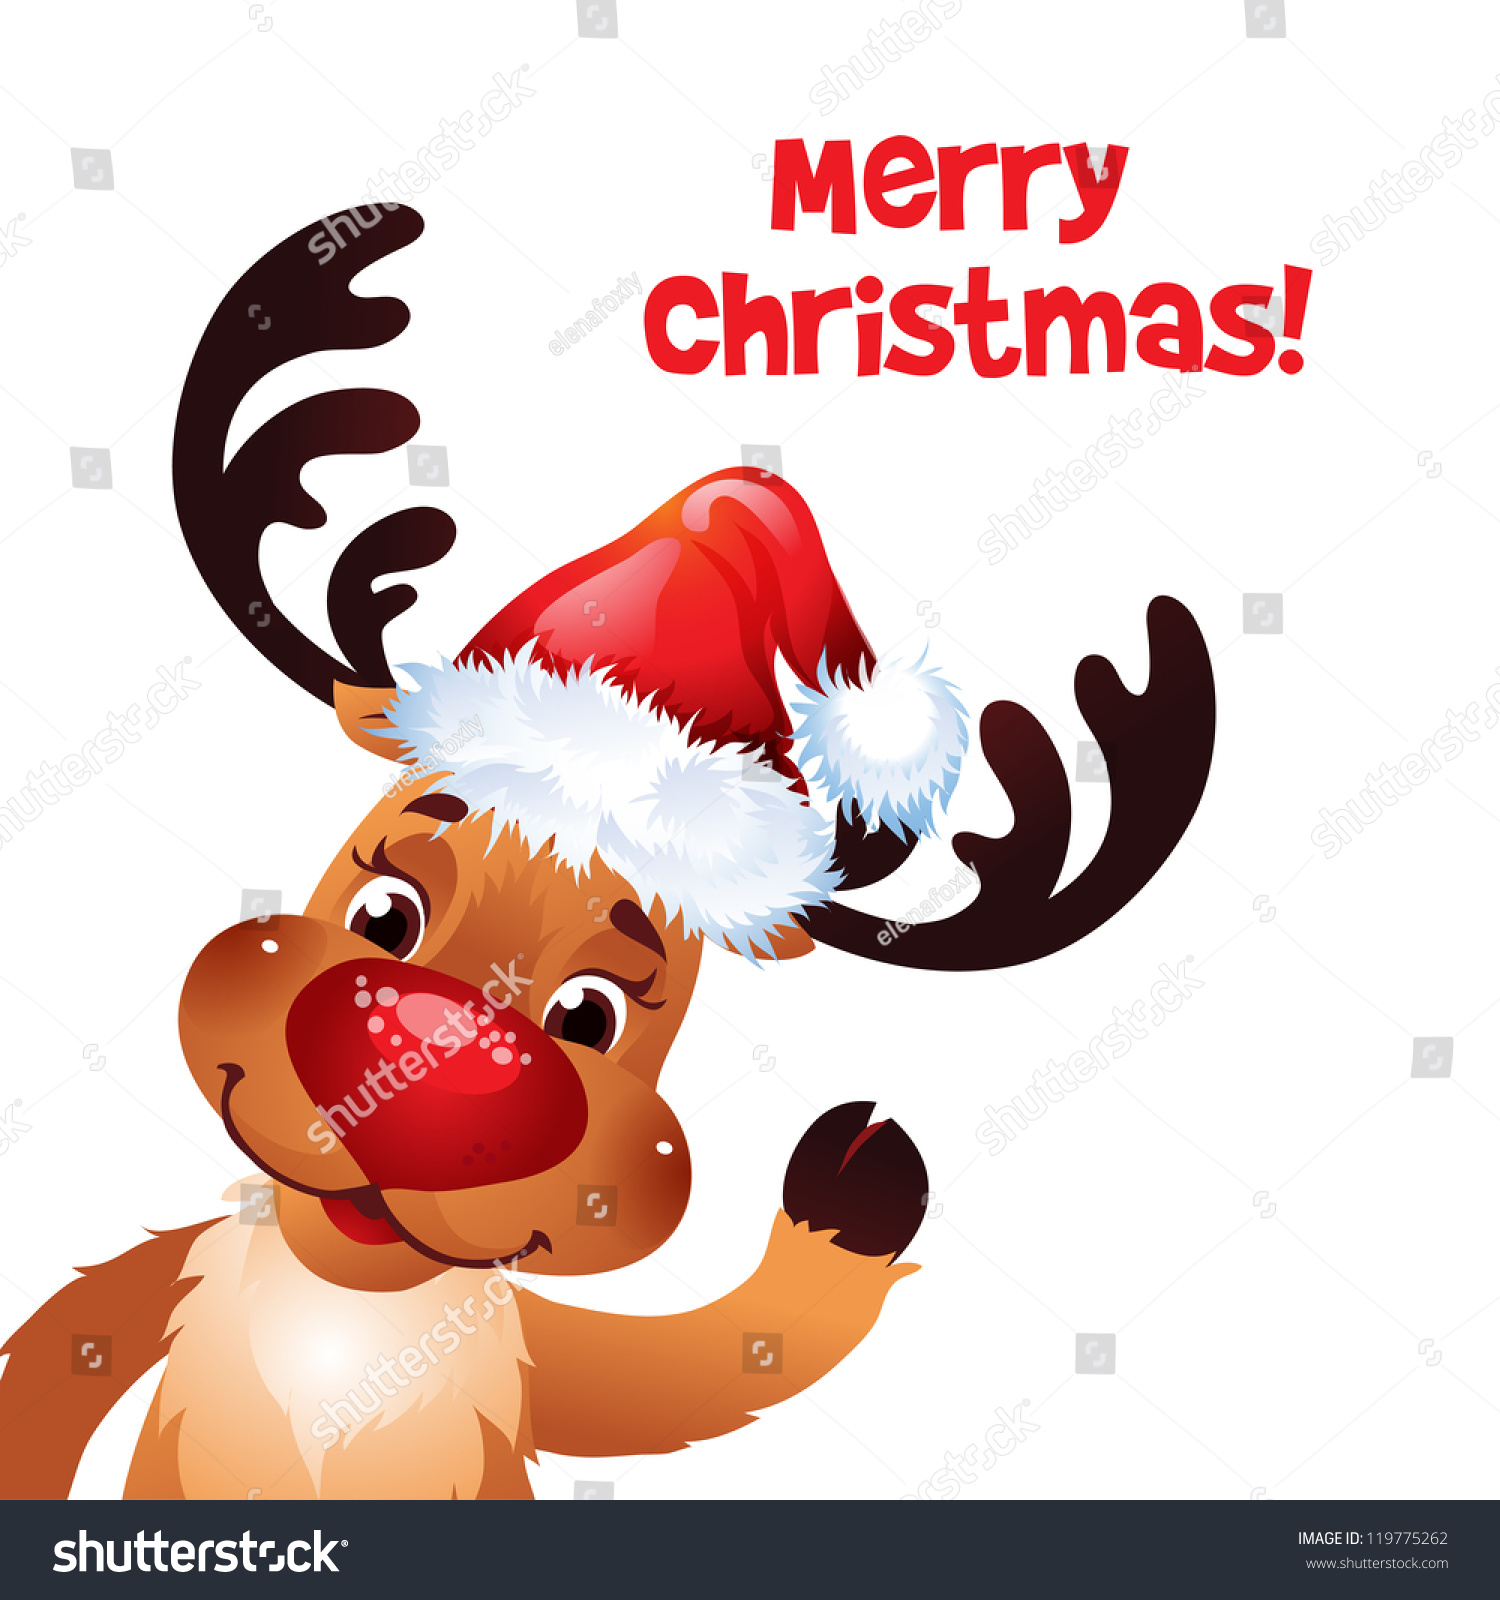 Christmas Reindeer Red Nose And Santa Hat Stock Vector. Christmas Ideas In Kindergarten. Christmas Decoration Ideas In Office Pictures. Blown Glass Christmas Ornaments Wholesale. Online Shopping Christmas Decorations. Christmas Tree Decorations In Felt. Personalised Christmas Tree Decorations For Couples. Christmas Lights For Sale Durban. Cheap Outdoor Inflatable Christmas Decorations